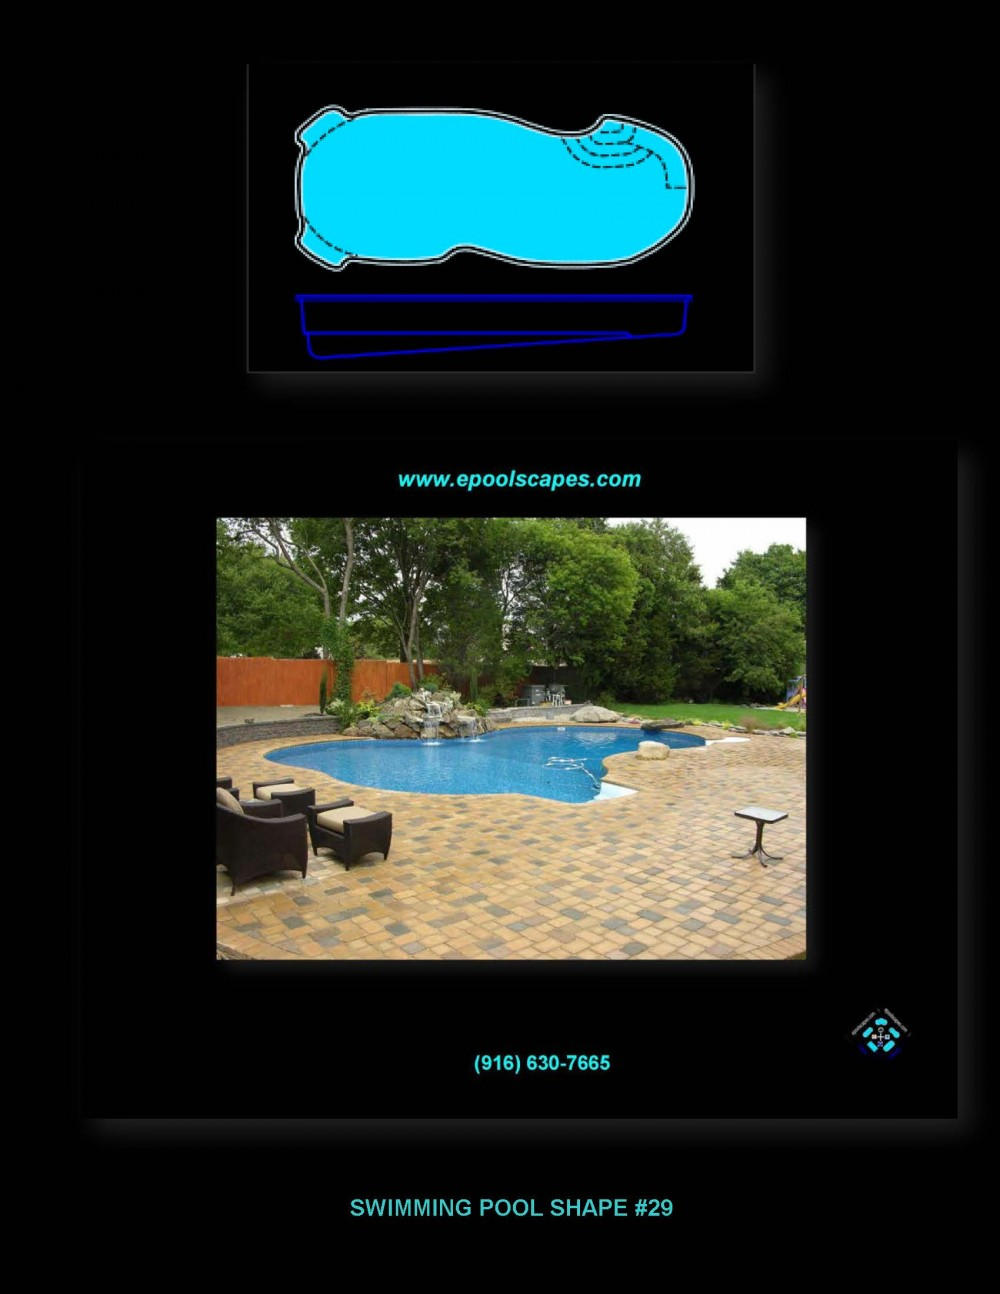 Pool Shape #29